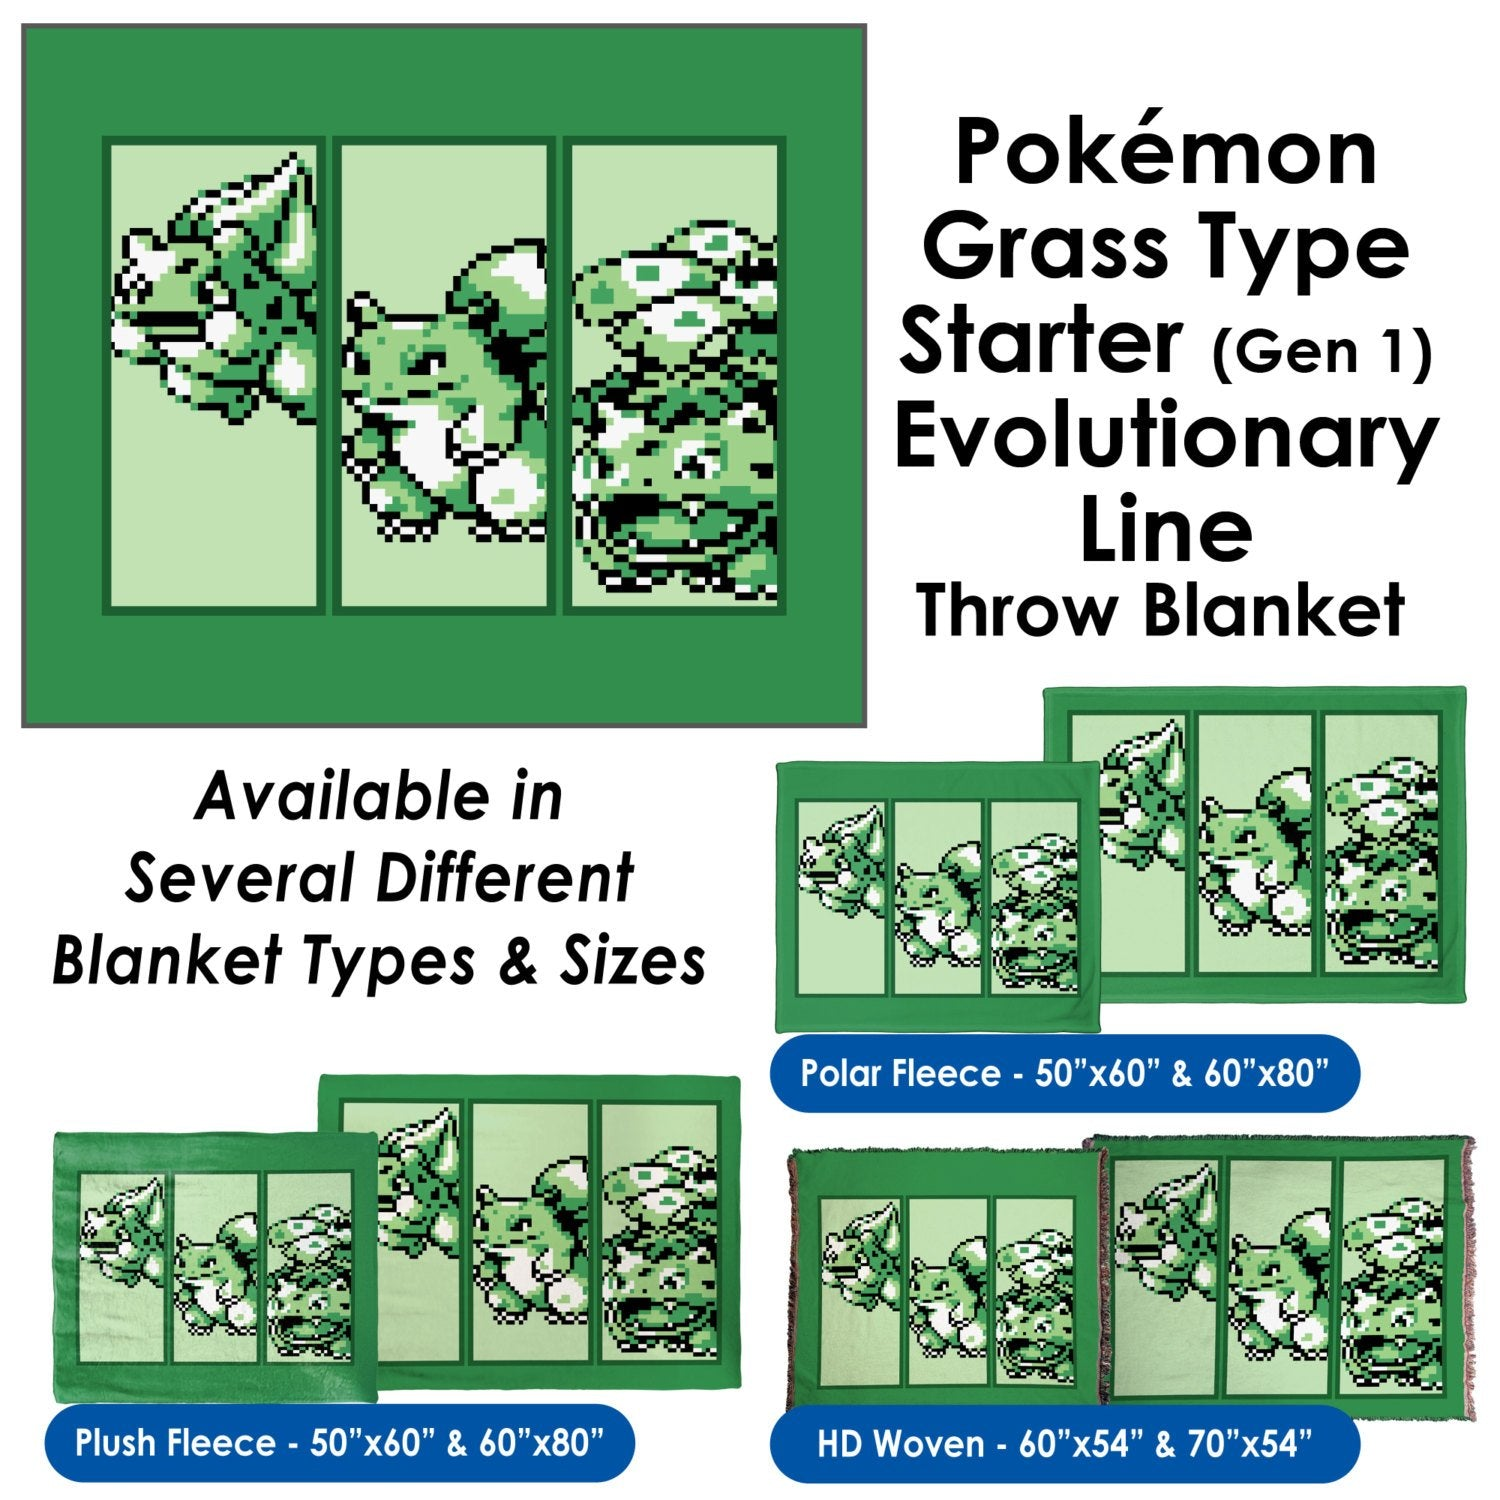 Pokemon Grass Type Starter (Gen 1) Evolutionary Line - Throw Blanket / Tapestry Wall Hanging